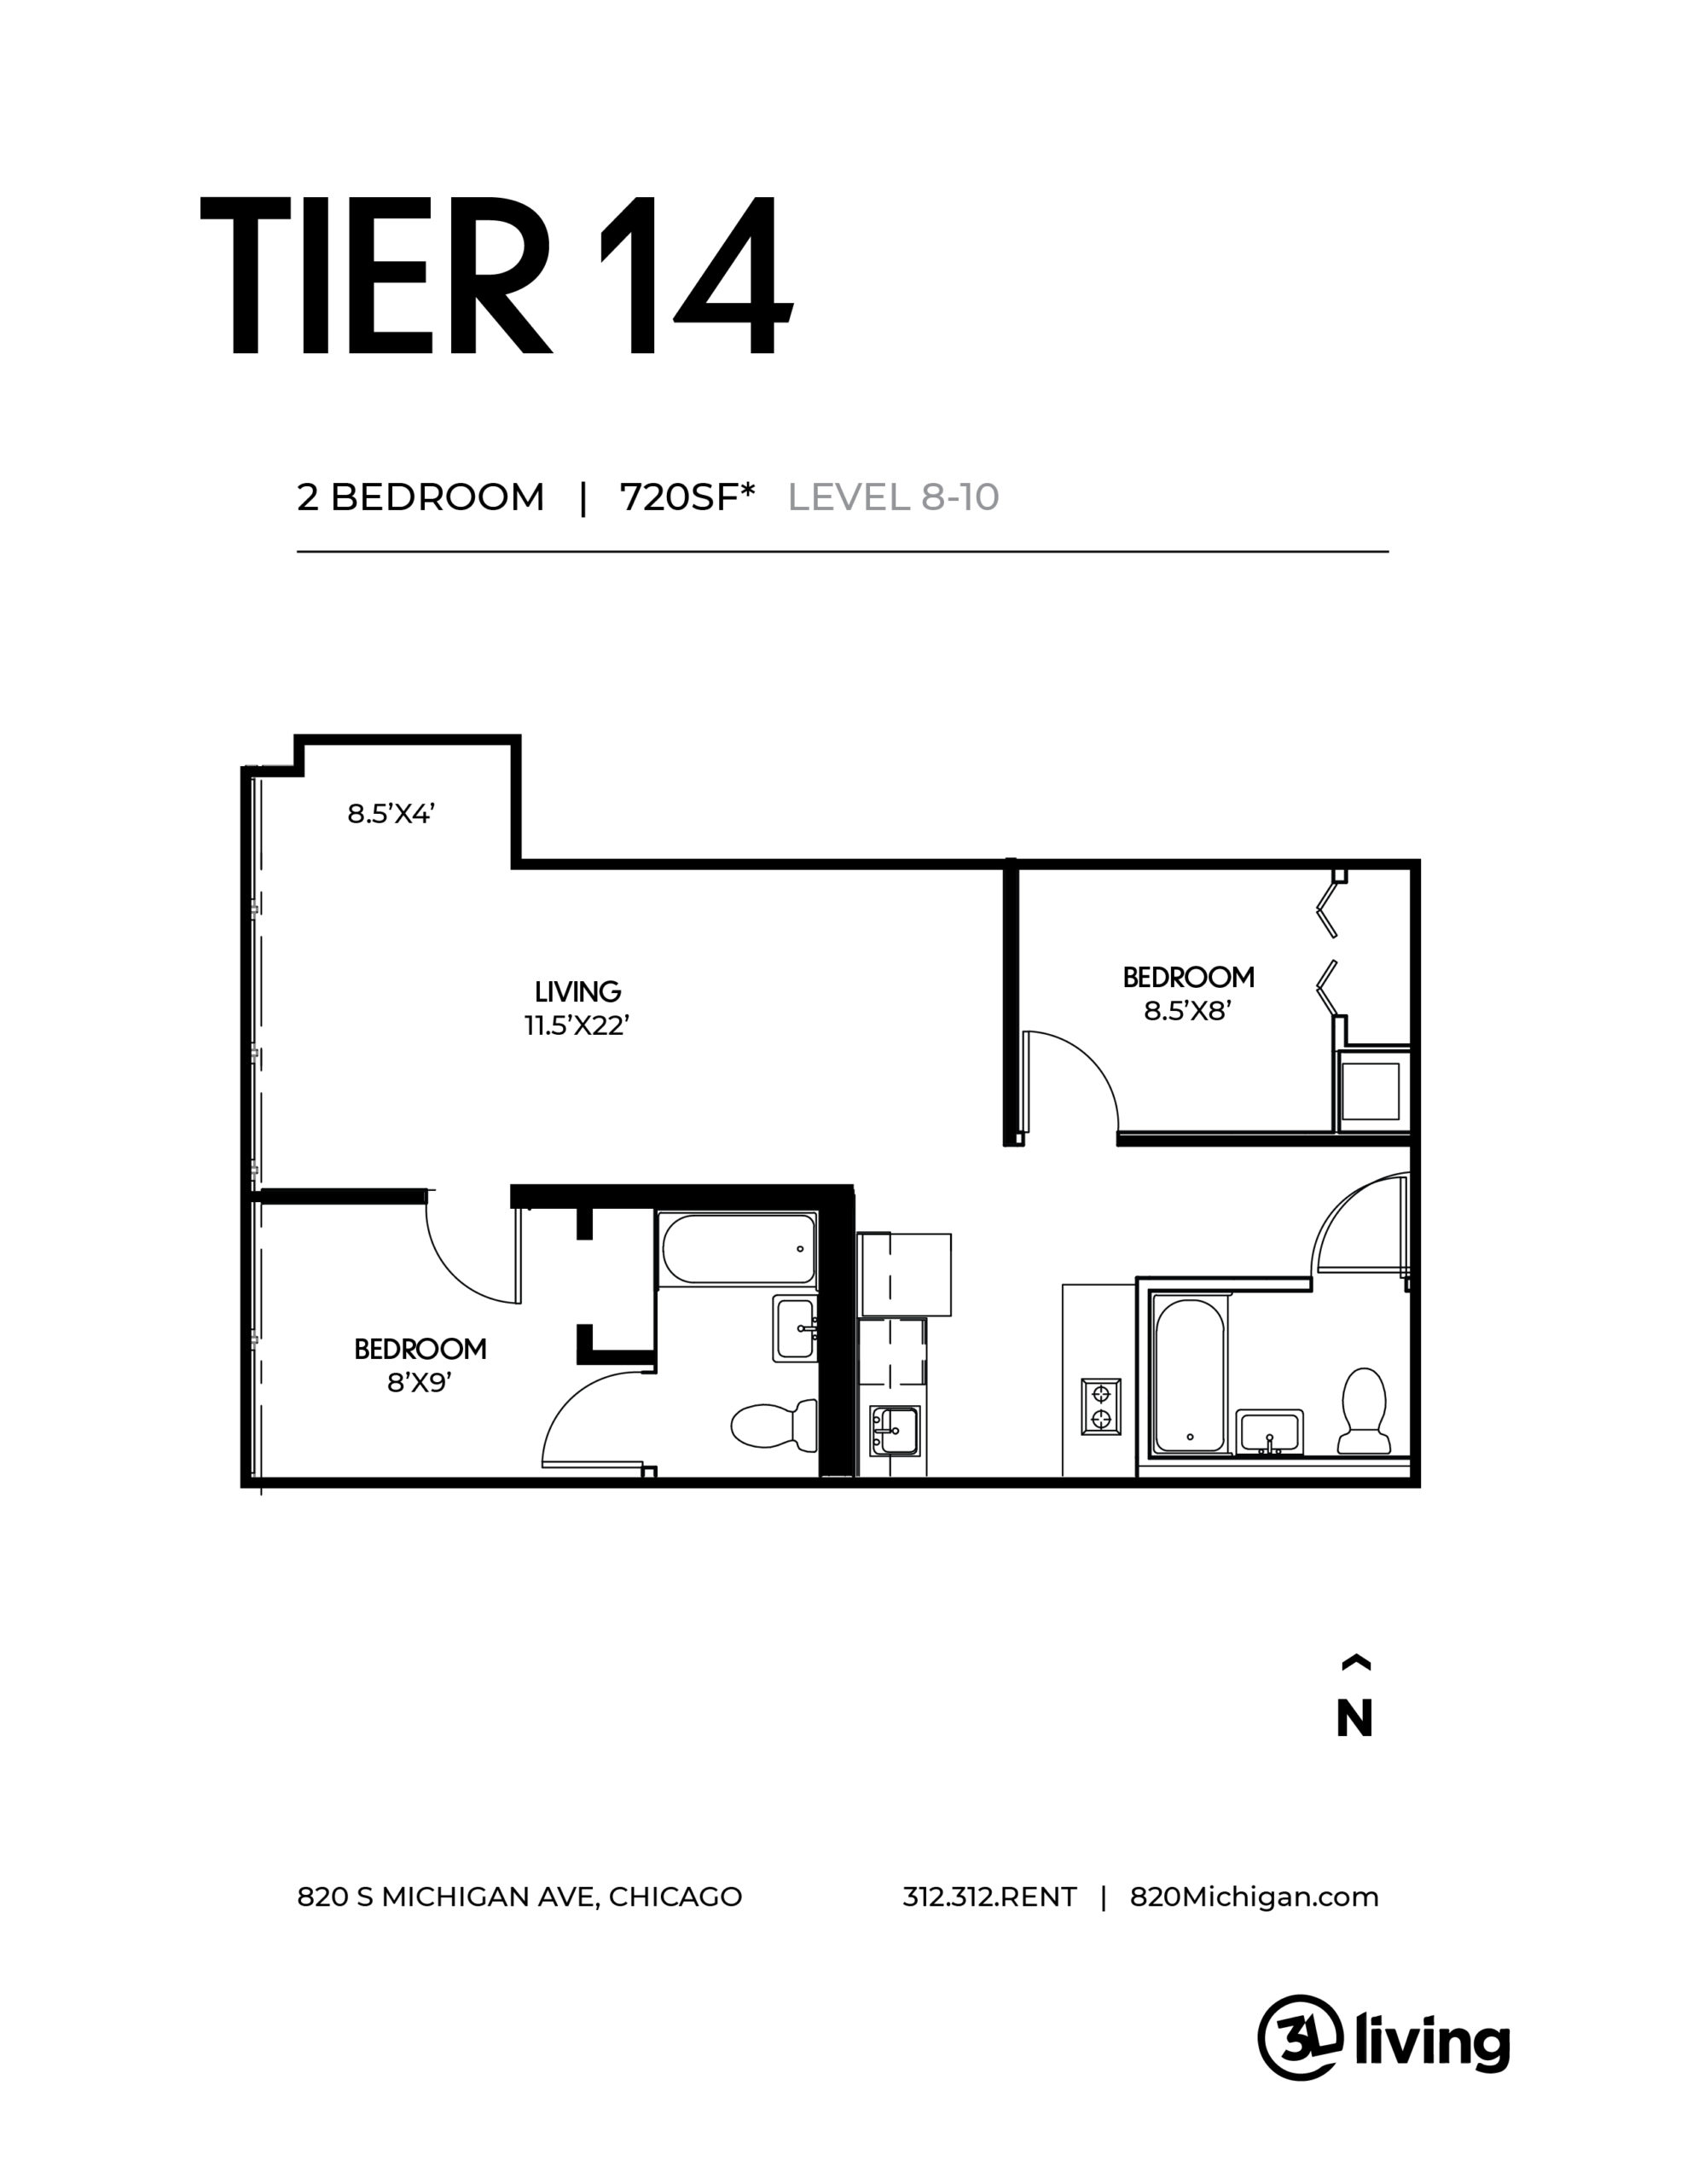 820SM-Floorplans-Measurements-R3-14